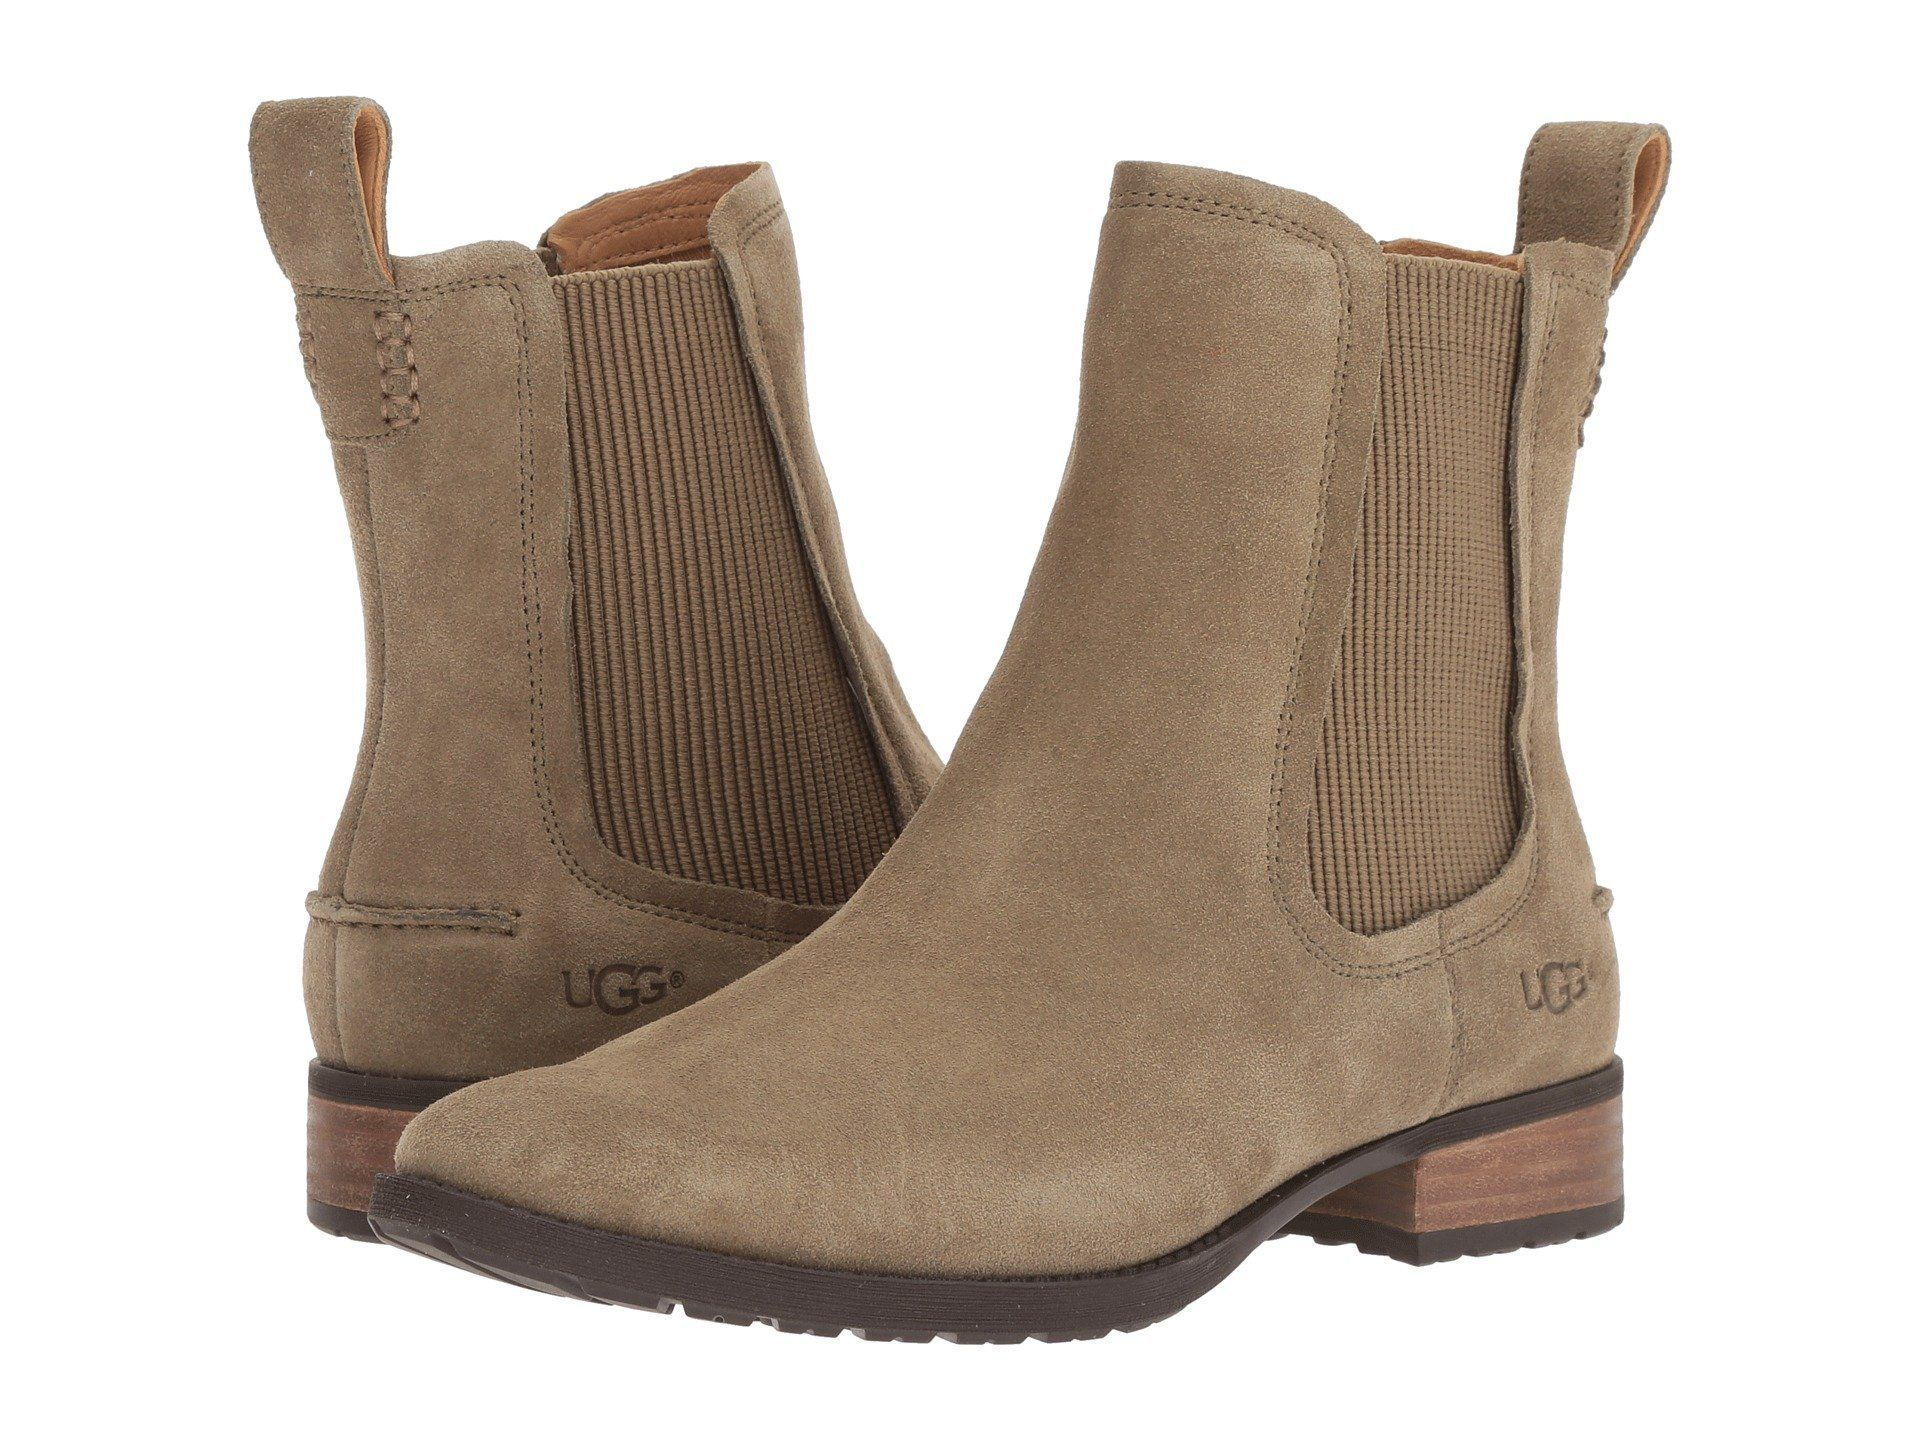 459c917c64a The Most Comfortable Boots Of 2018, According To Die-Hard Shoe ...